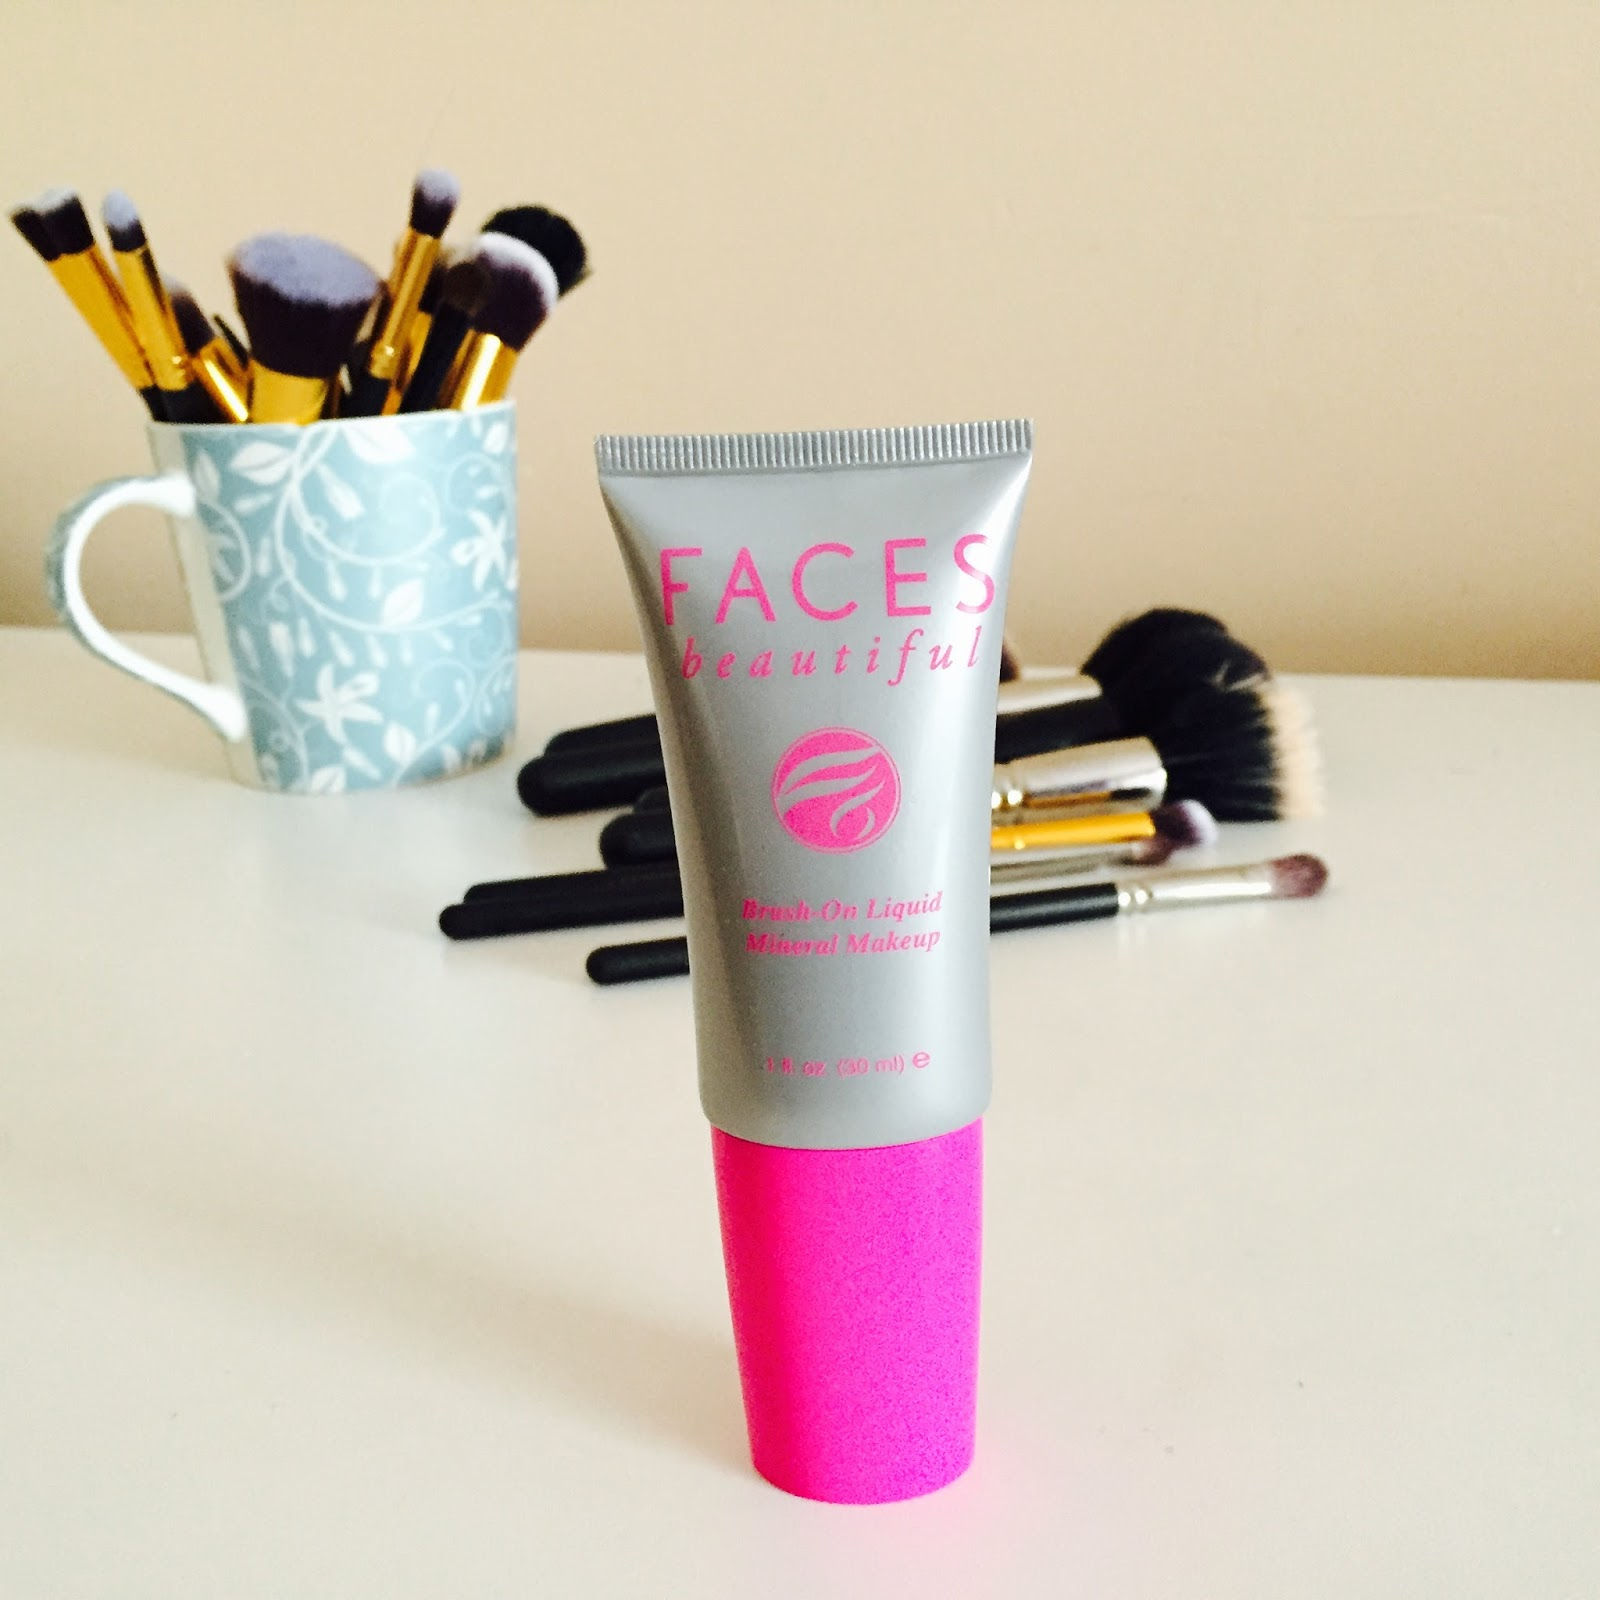 faces beautiful, faces beautiful liquid mineral makeup, faces beautiful review, liquid mineral make up,